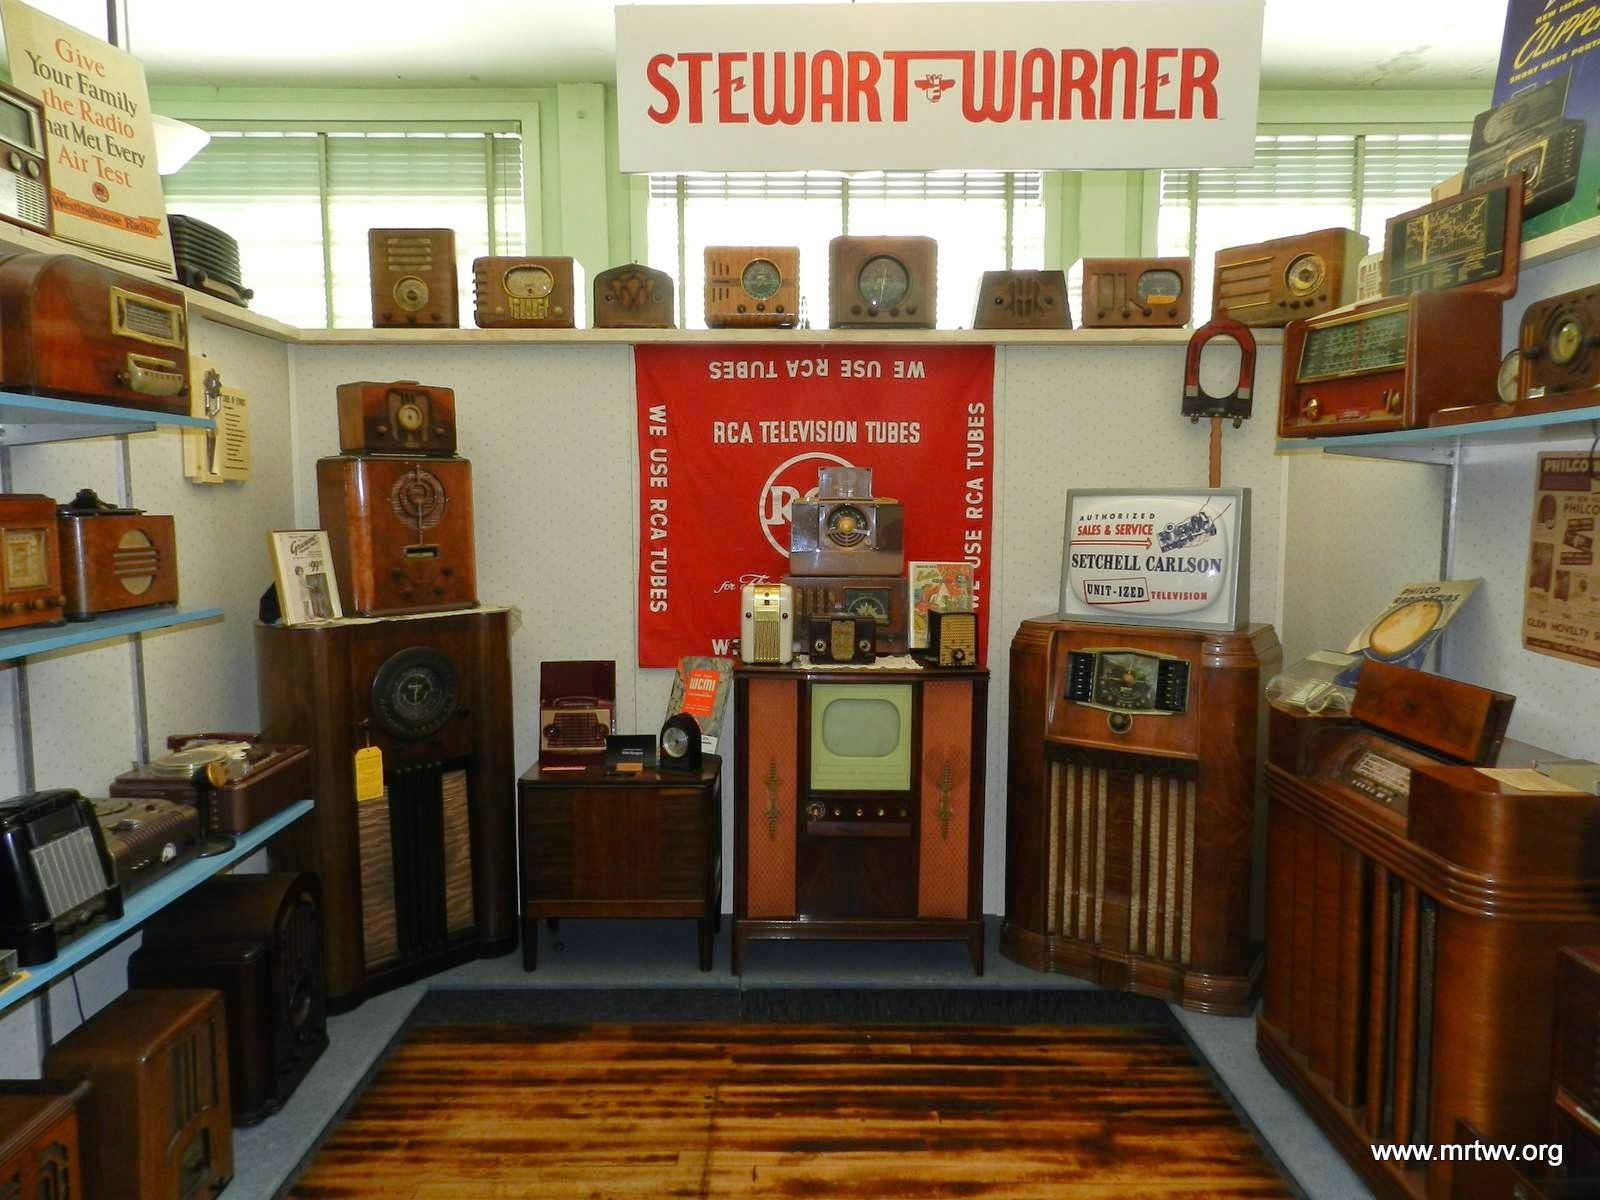 The Museum of Radio and Technology has a variety of different radios from the 1920s to modern times. Image obtained from the Museum of Radio and Technology.